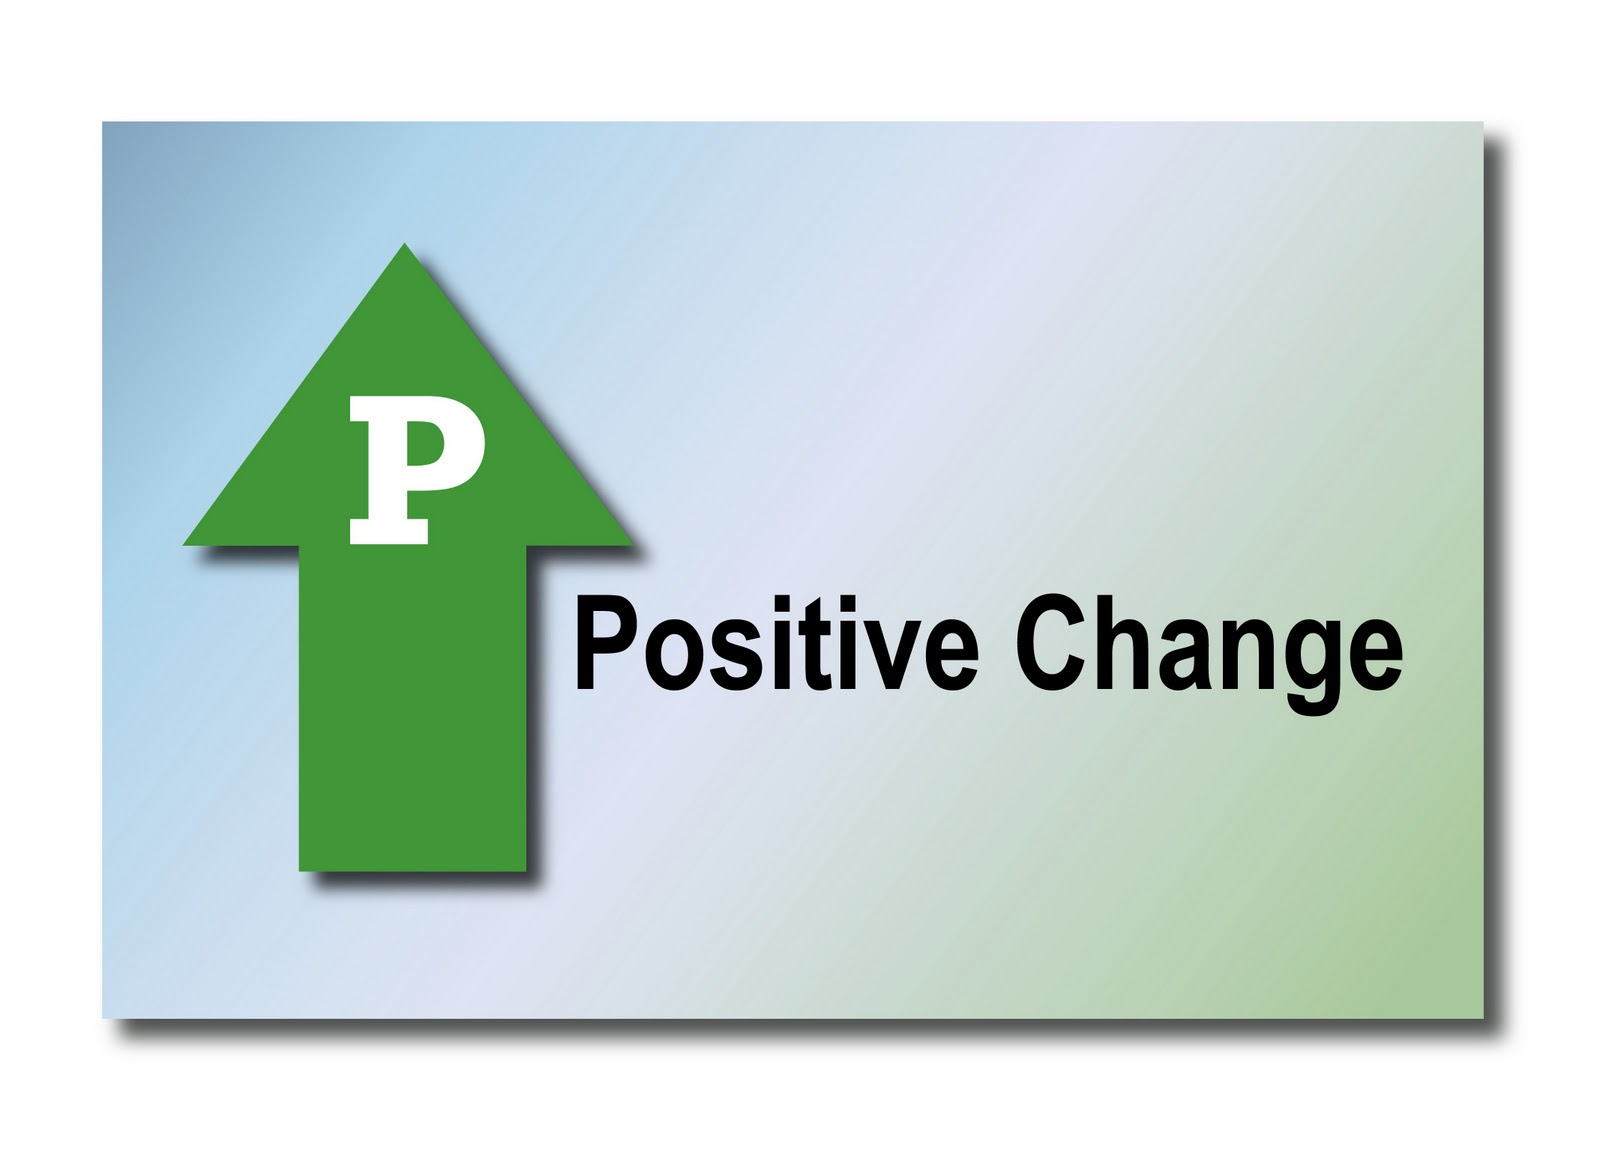 positive changes 17 reviews of positive changes hypnosis - closed after i suspended my  prejudices, disbelieves and preconceived ideas this program started to work.